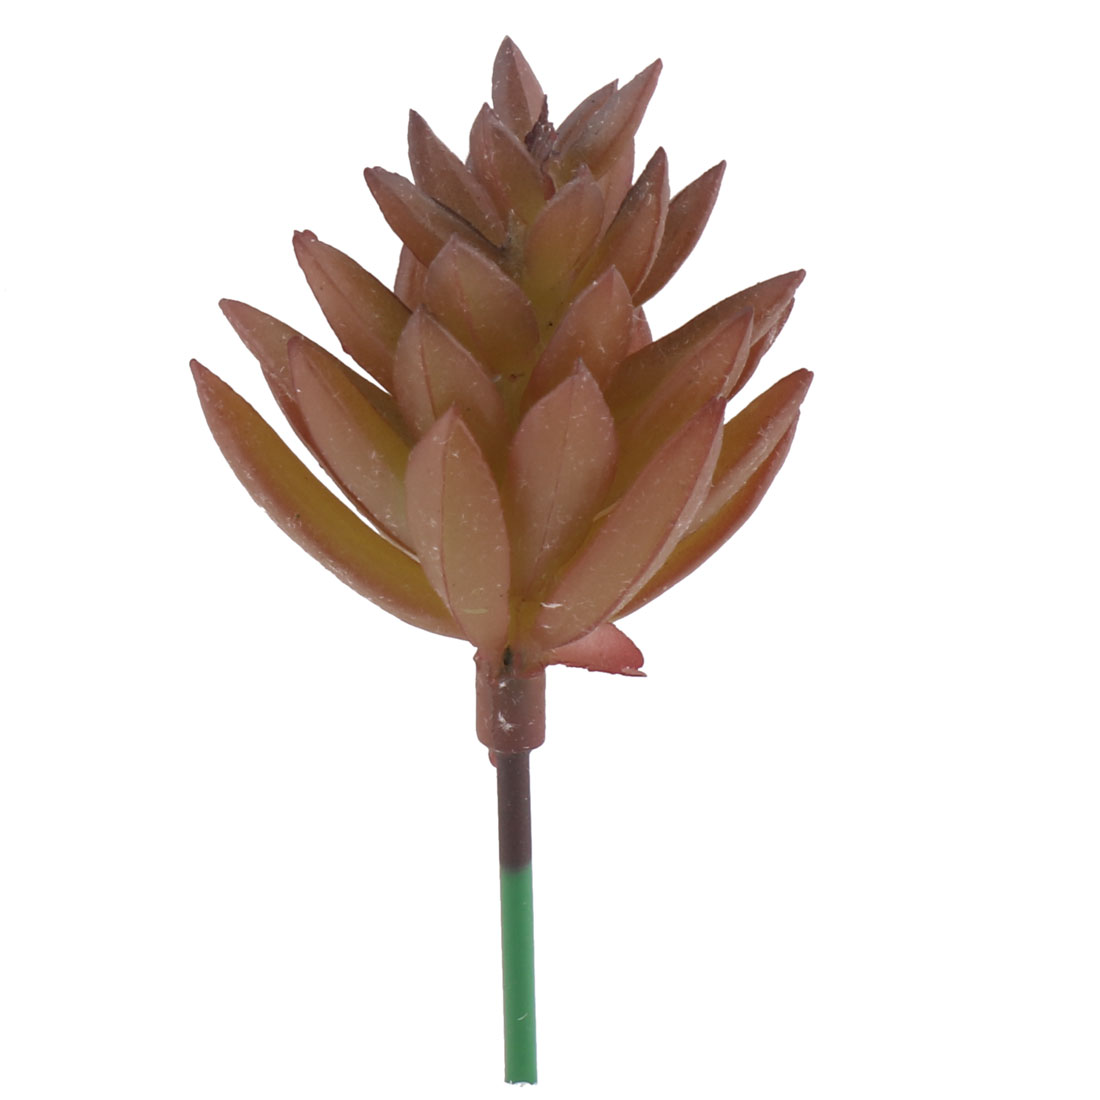 Living Room Office Plastic DIY Artificial Emulational Plant Ornament Brown